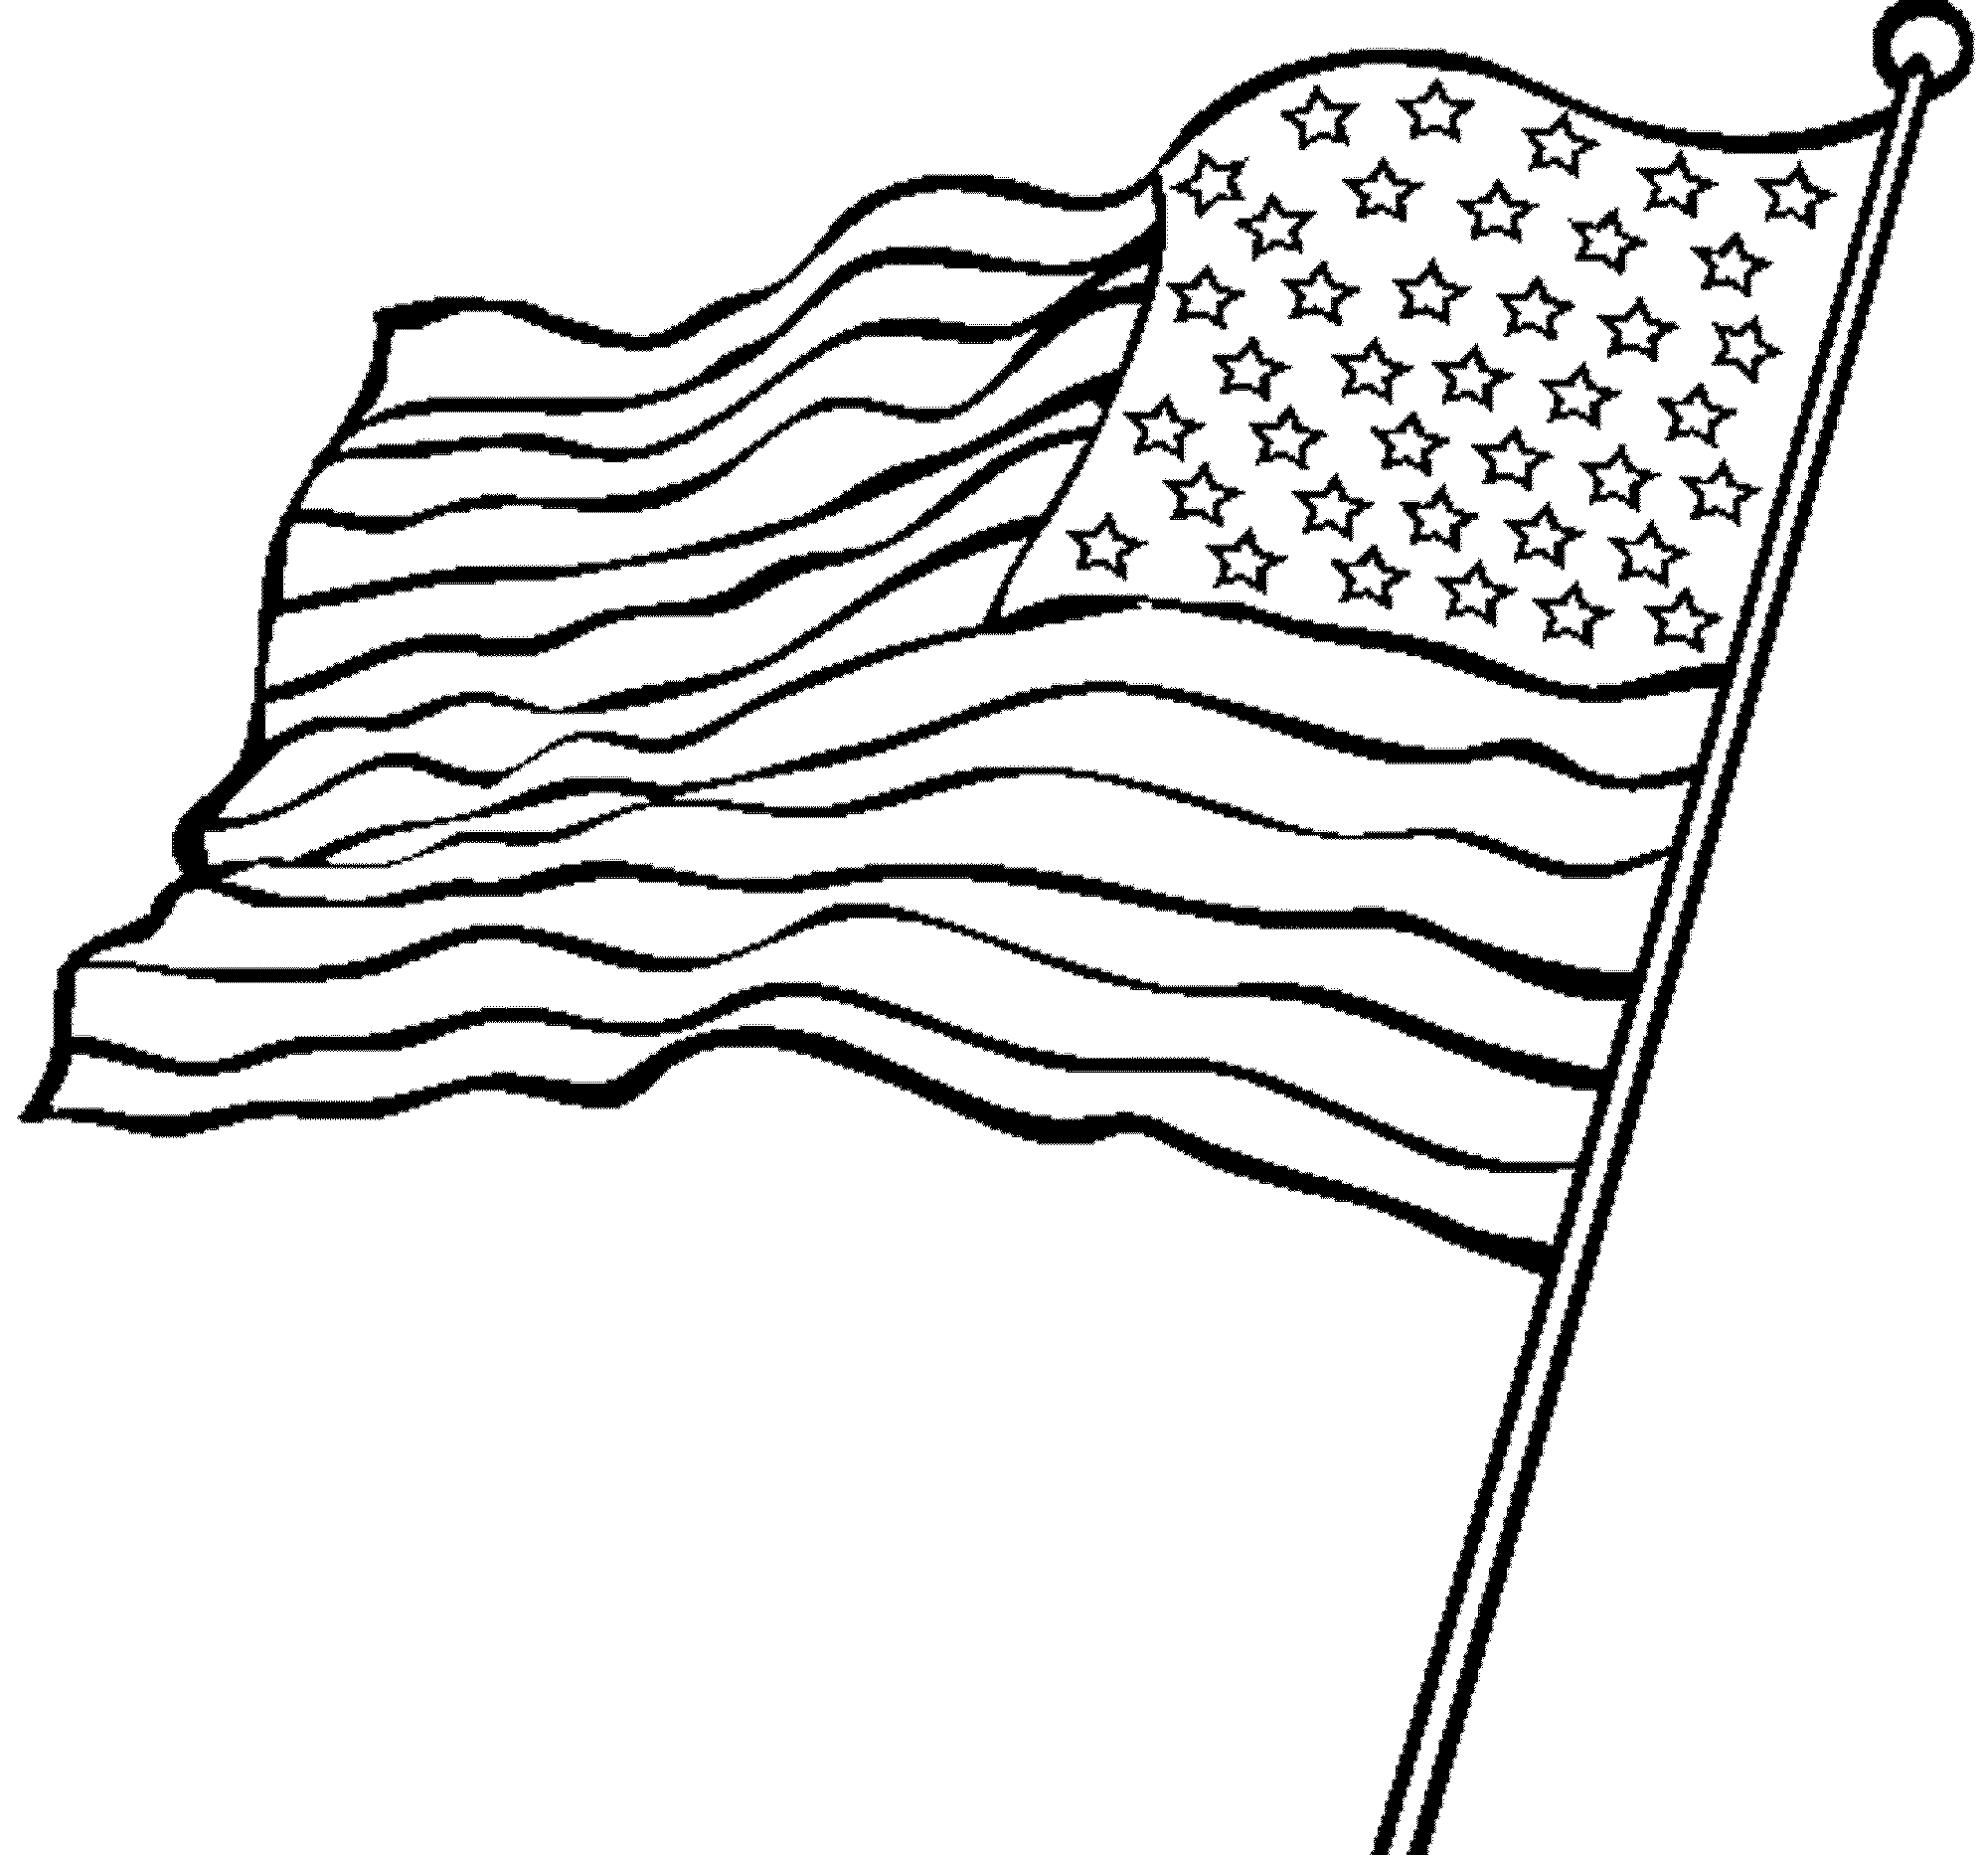 american flag coloring pages american flag coloring pages best coloring pages for kids american pages coloring flag